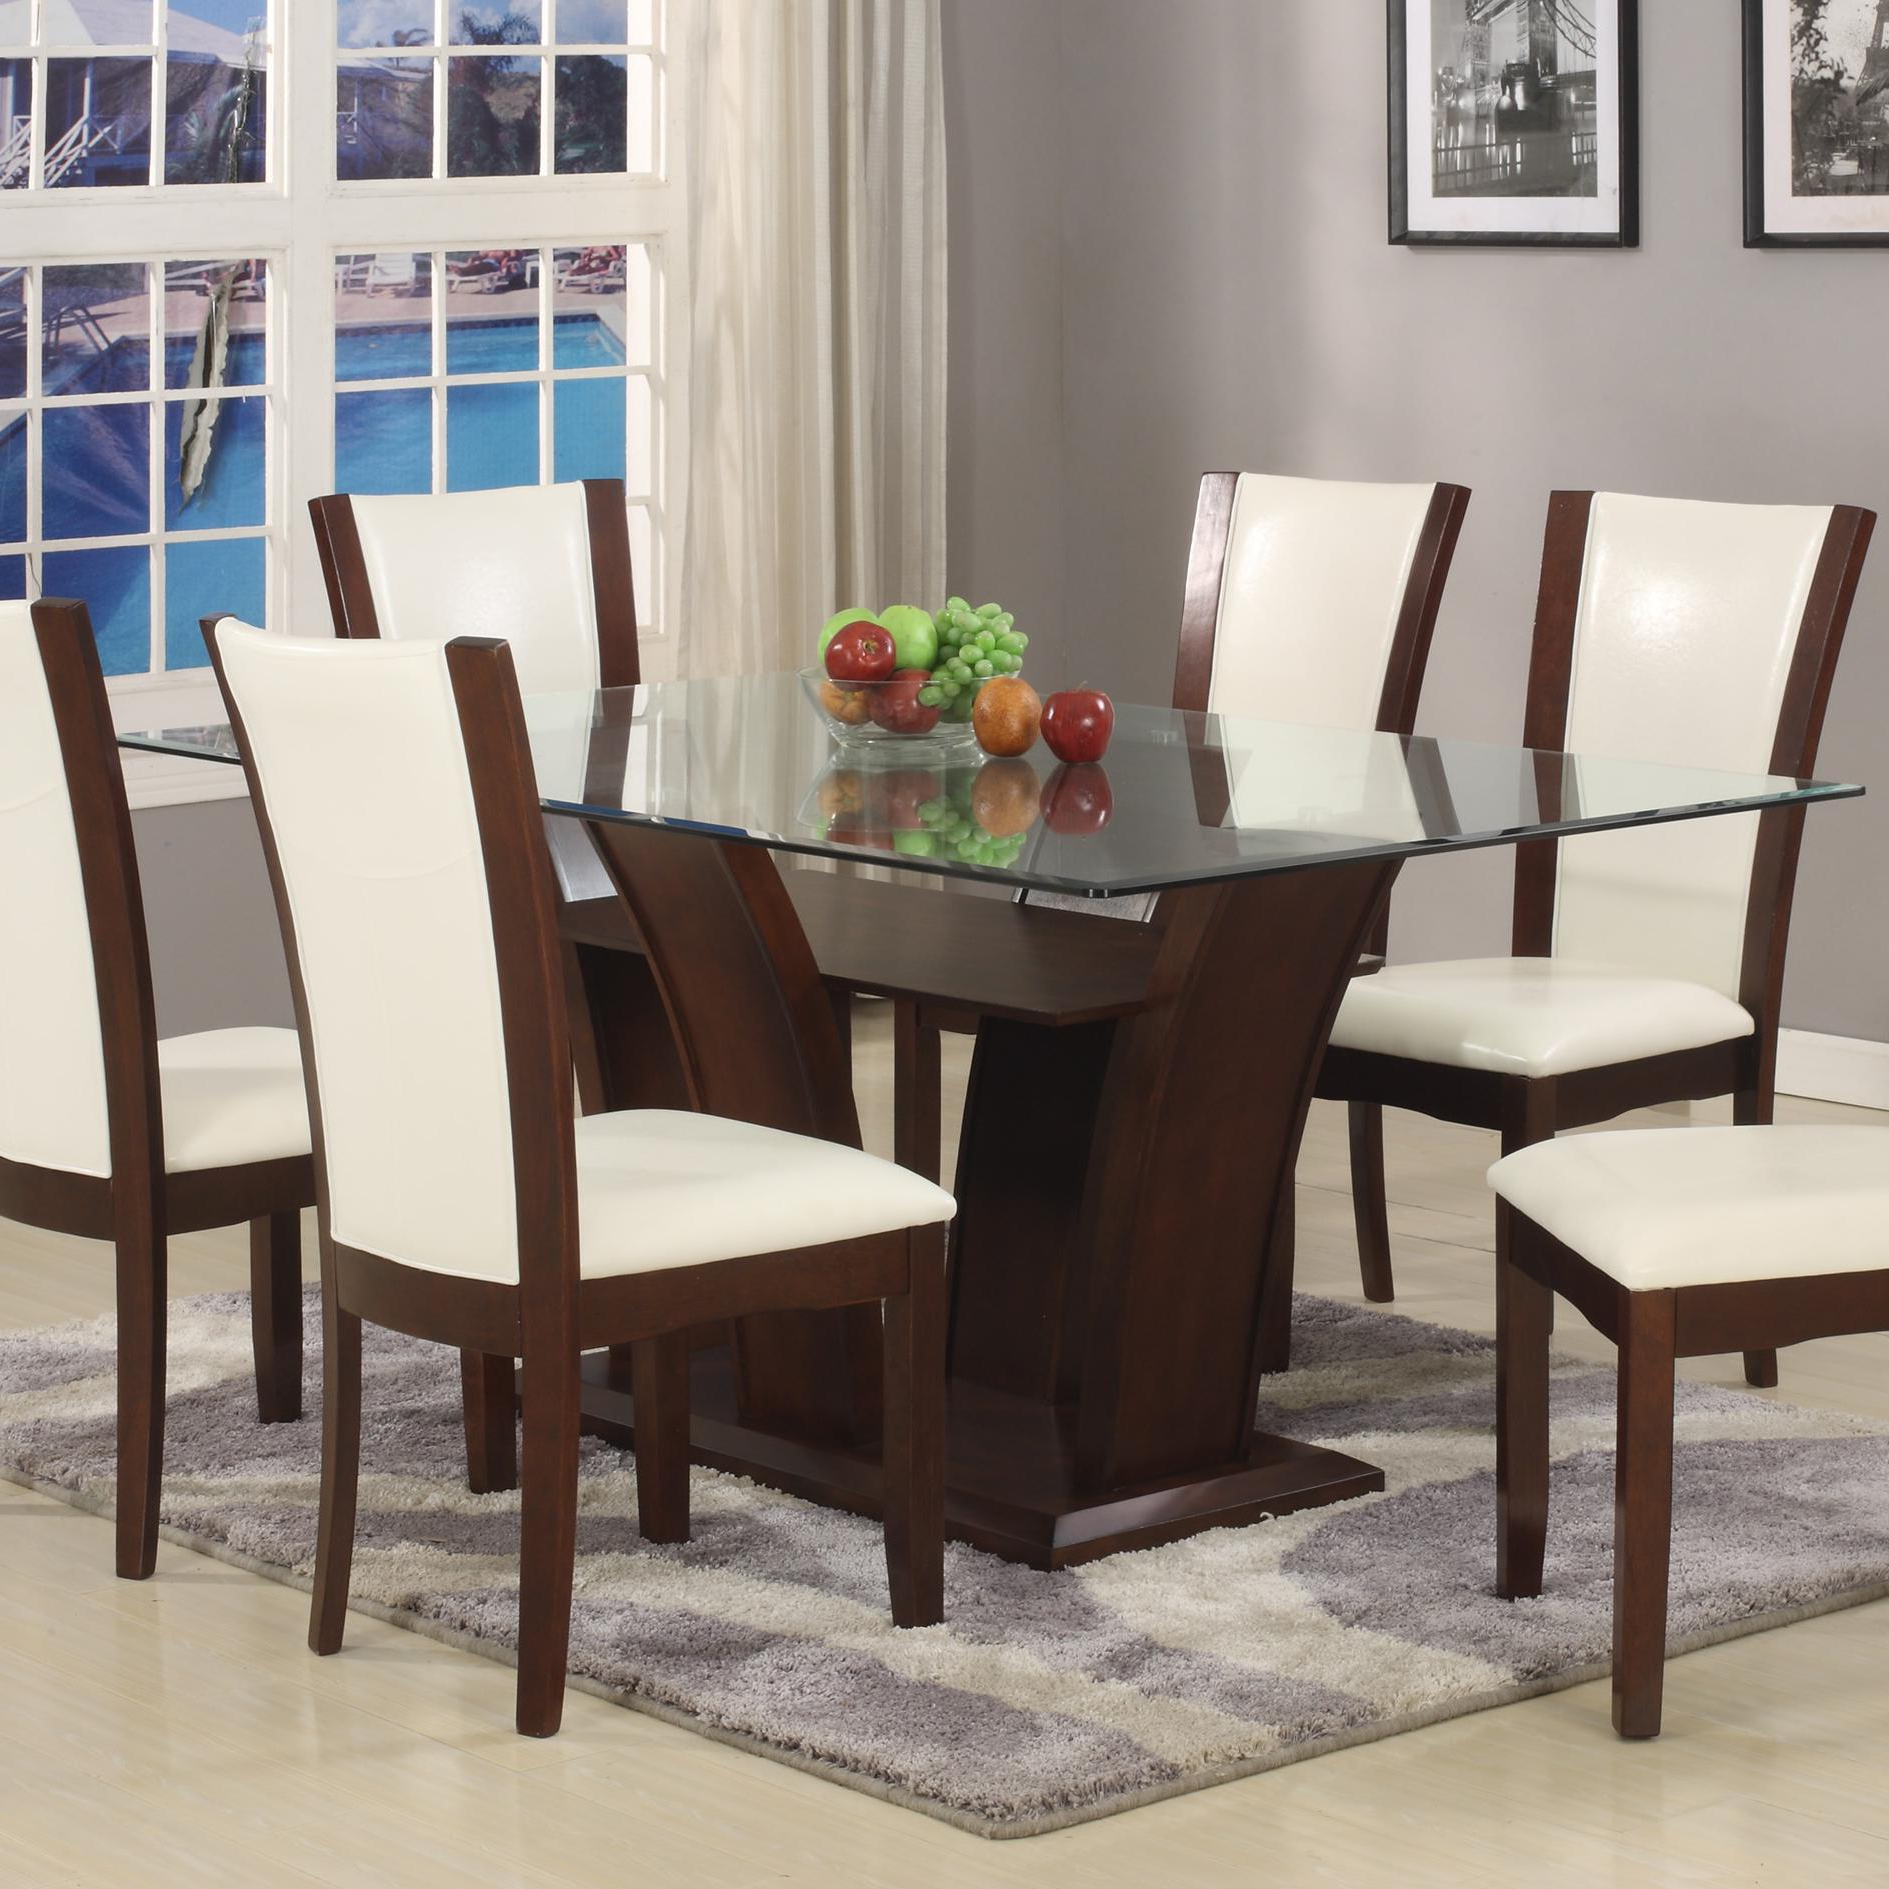 Rectangular Glasstop Dining Tables pertaining to Widely used Camelia White Dining Table